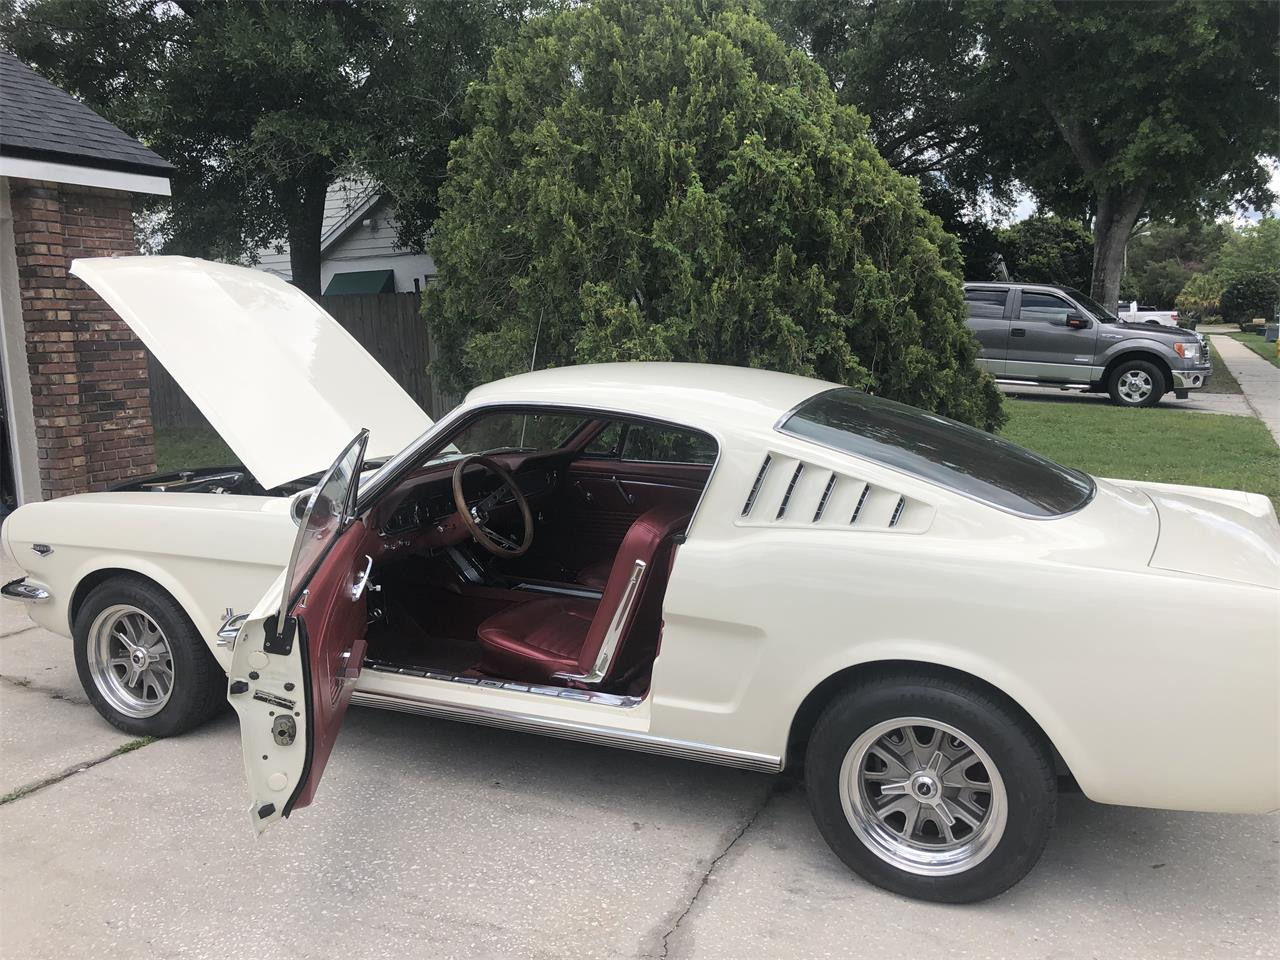 Large Picture of 1966 Ford Mustang - $37,900.00 Offered by a Private Seller - PV56